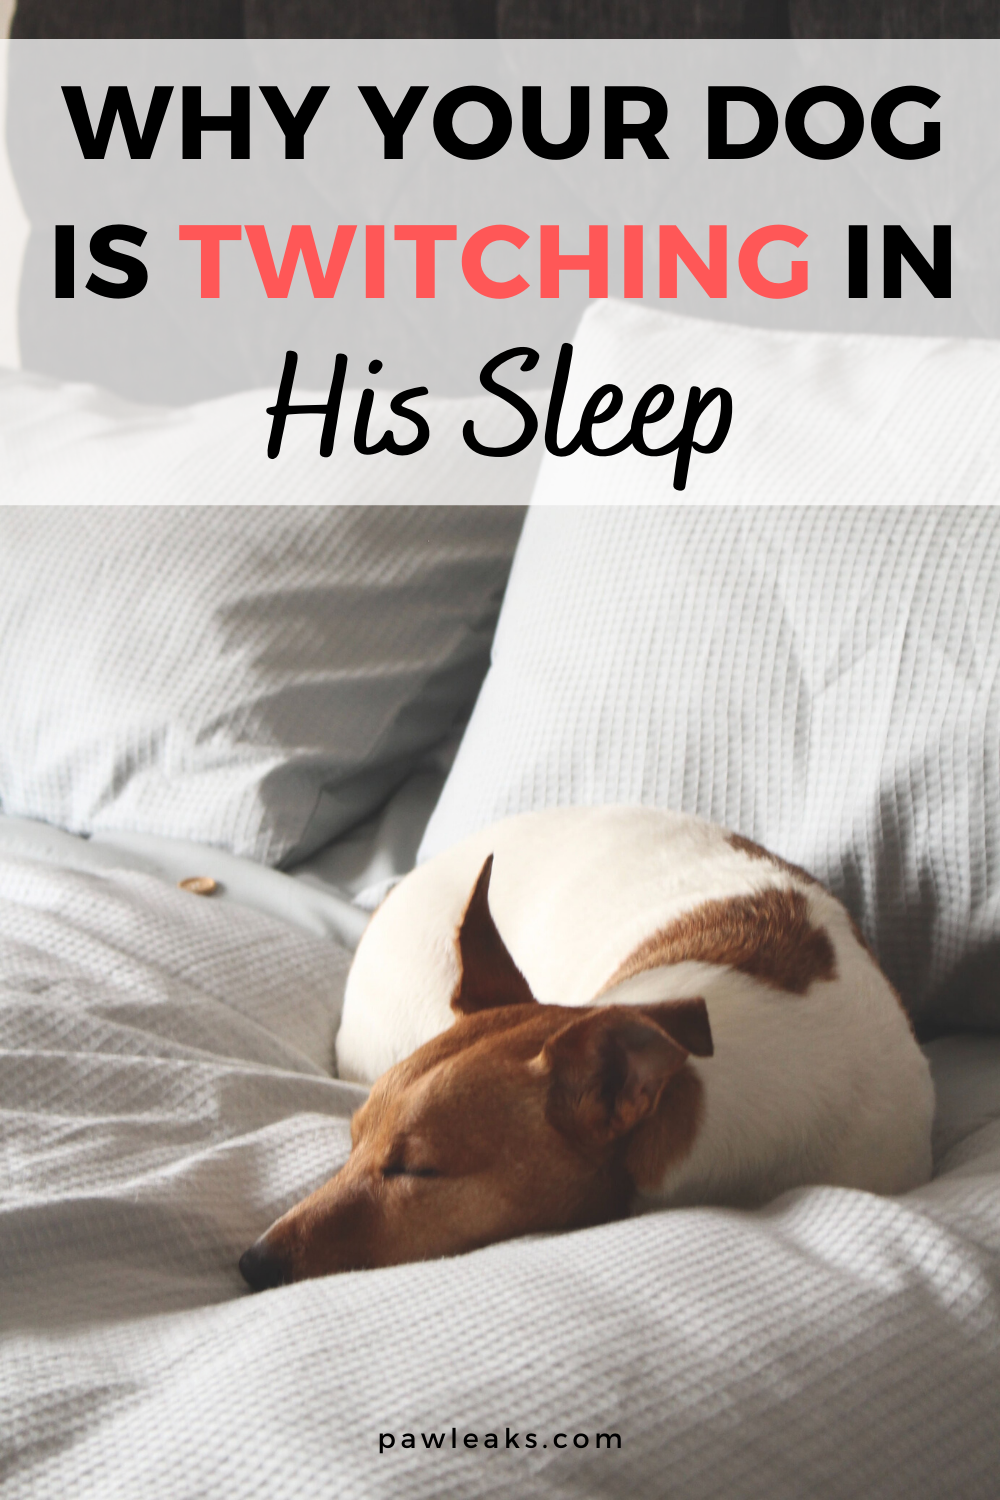 3 Reasons Your Dog Is Twitching In His Sleep Pawleaks In 2020 Your Dog Dogs Sleeping Dogs